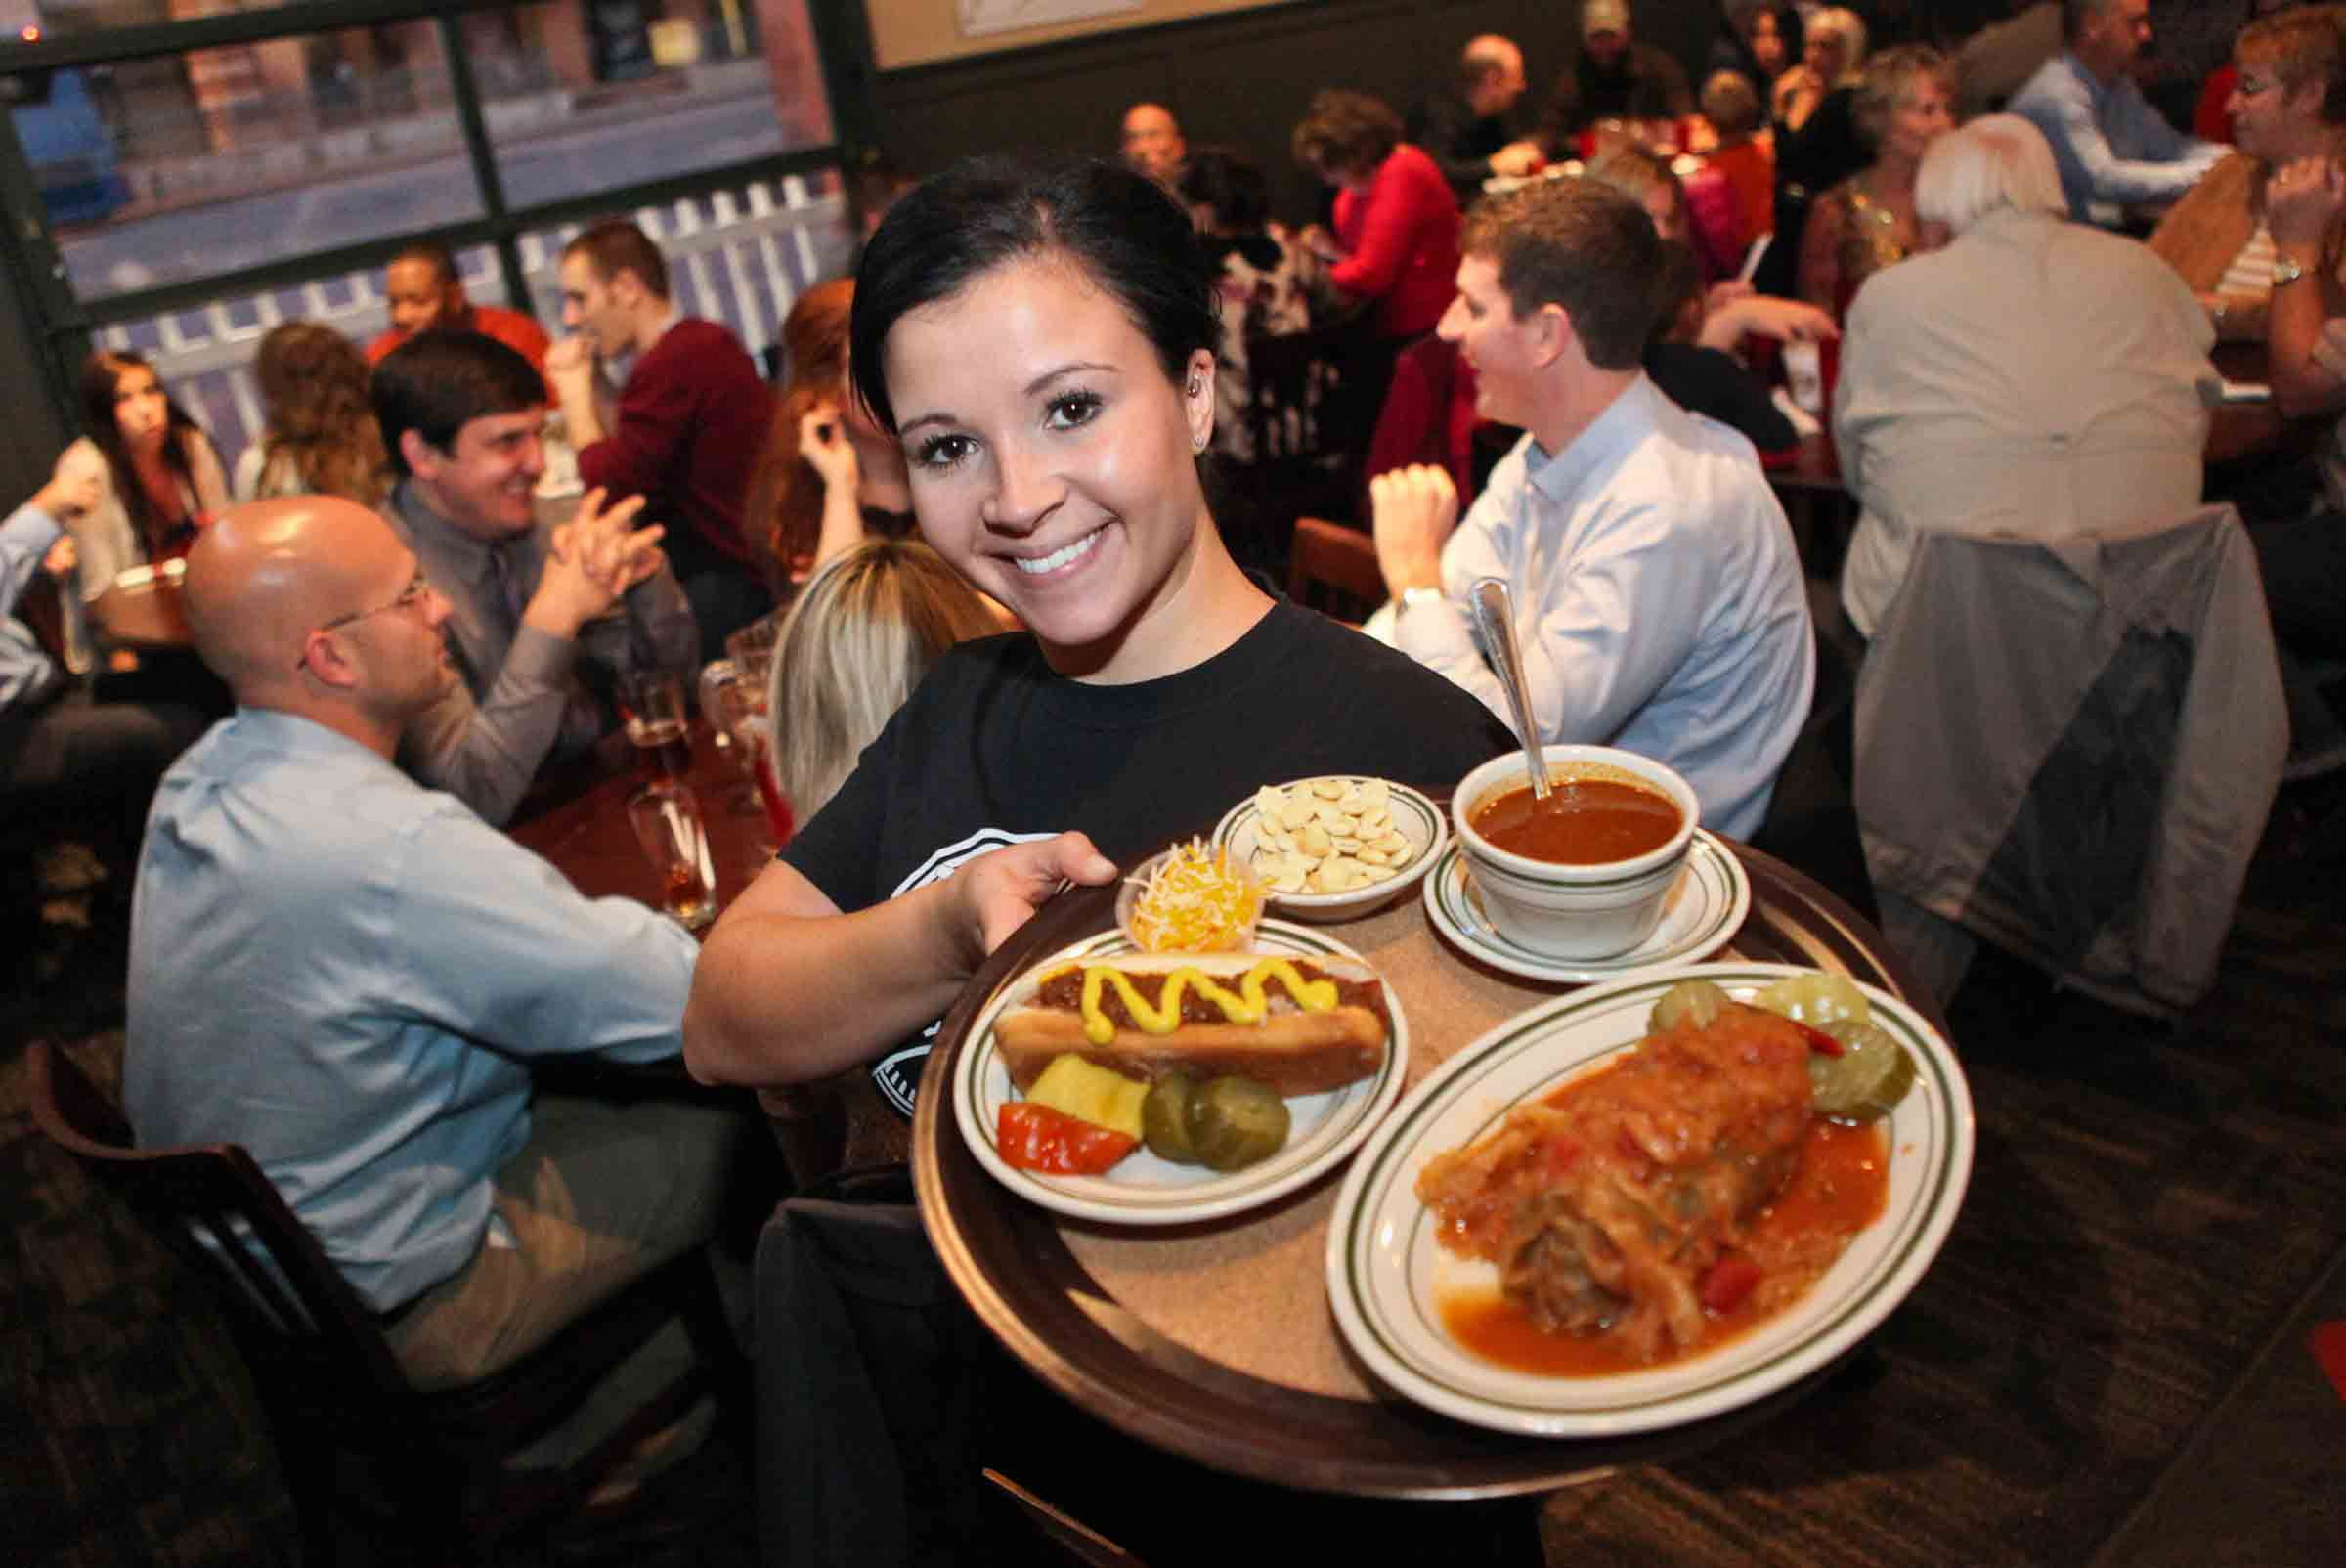 Waitress Serving Tony Packos to Hungry Customers enjoying themselves in the restaurant